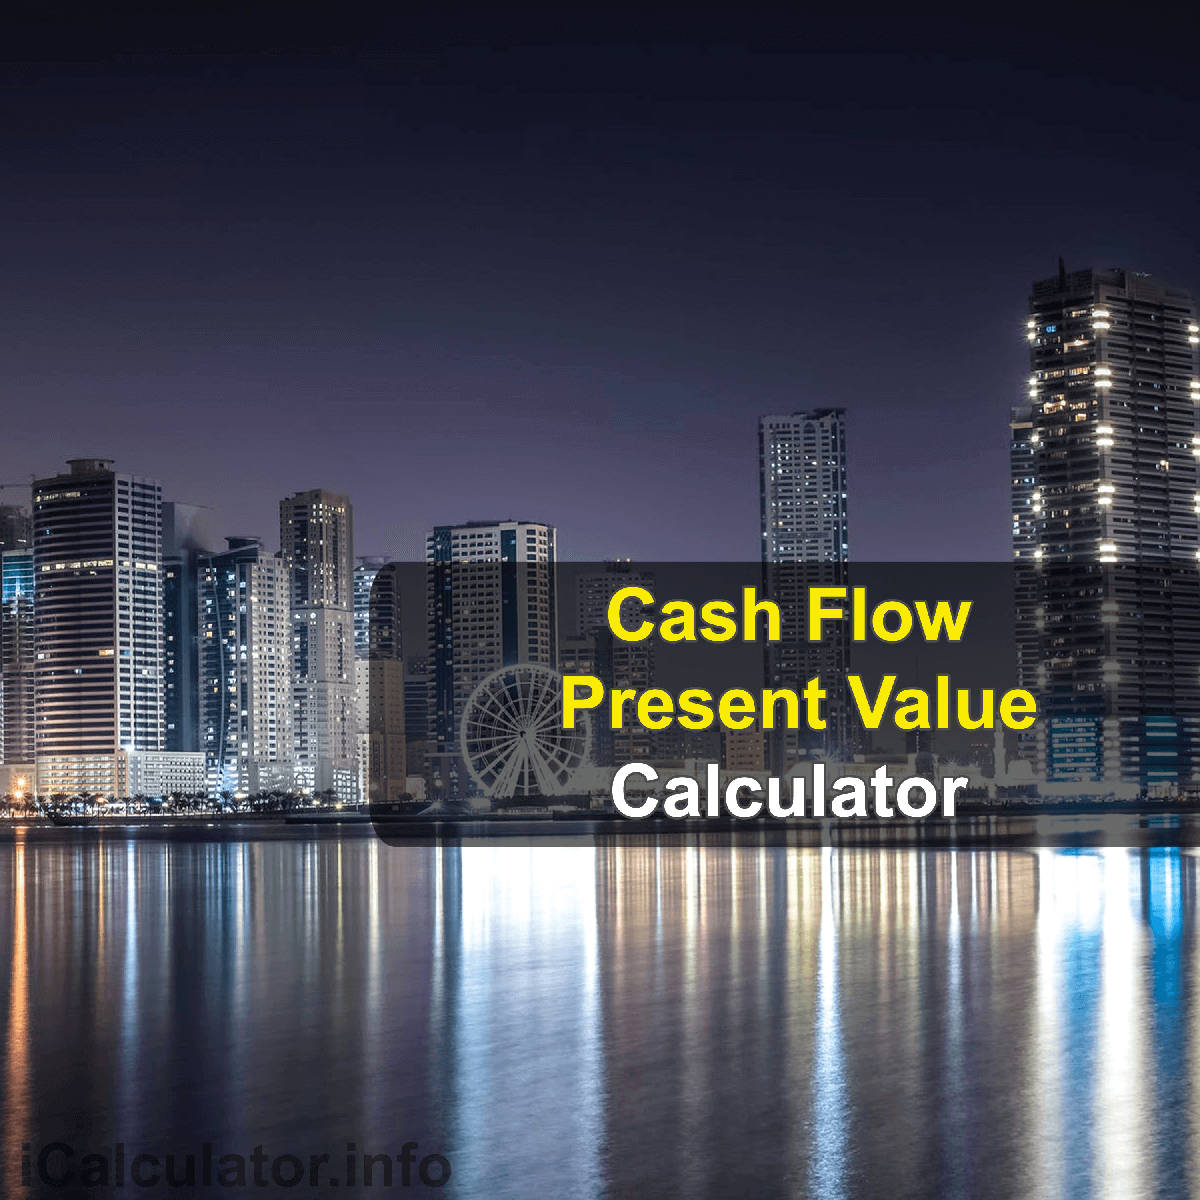 Present Value of Cash Flows Calculator. This image provides details of how to calculate the present value of cash flows using a calculator and notepad. By using the present value of cash flows formula, the Present Value of Cash Flows Calculator provides a true calculation of the funds received in the near future whether they are worth as much as their value today